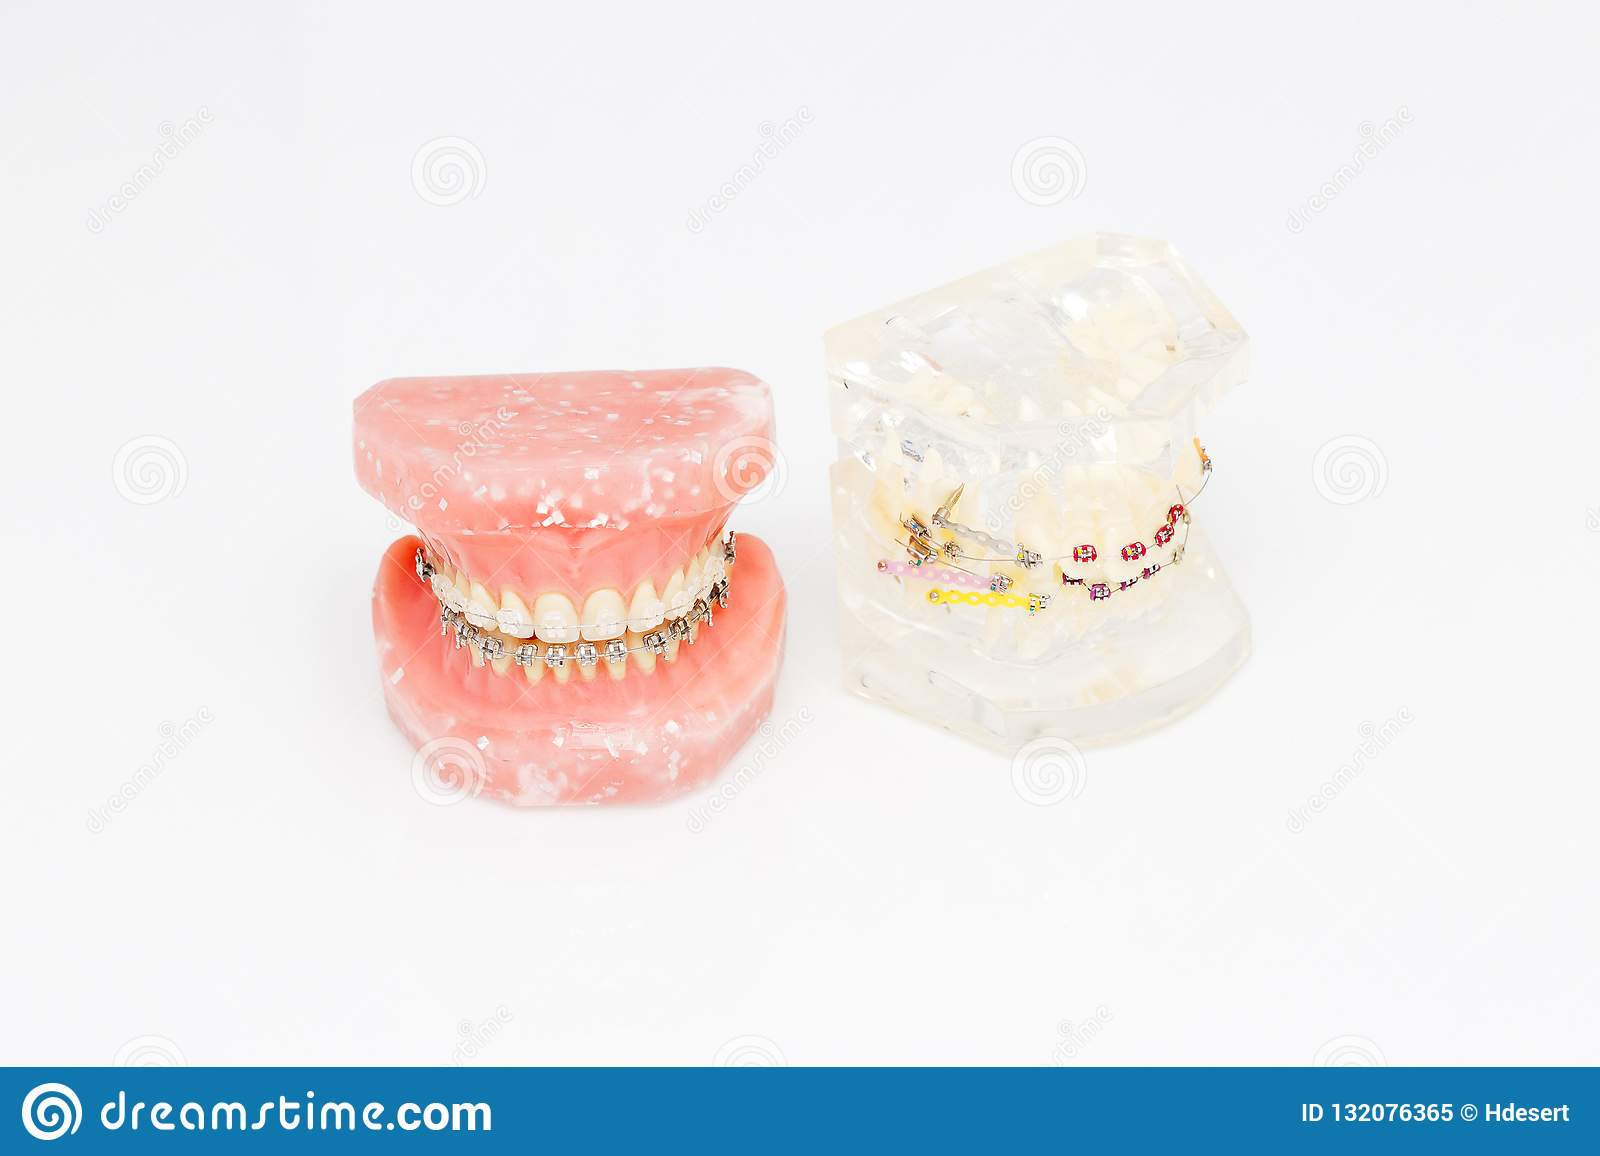 Human teeth orthodontic dental model with implants, dental braces